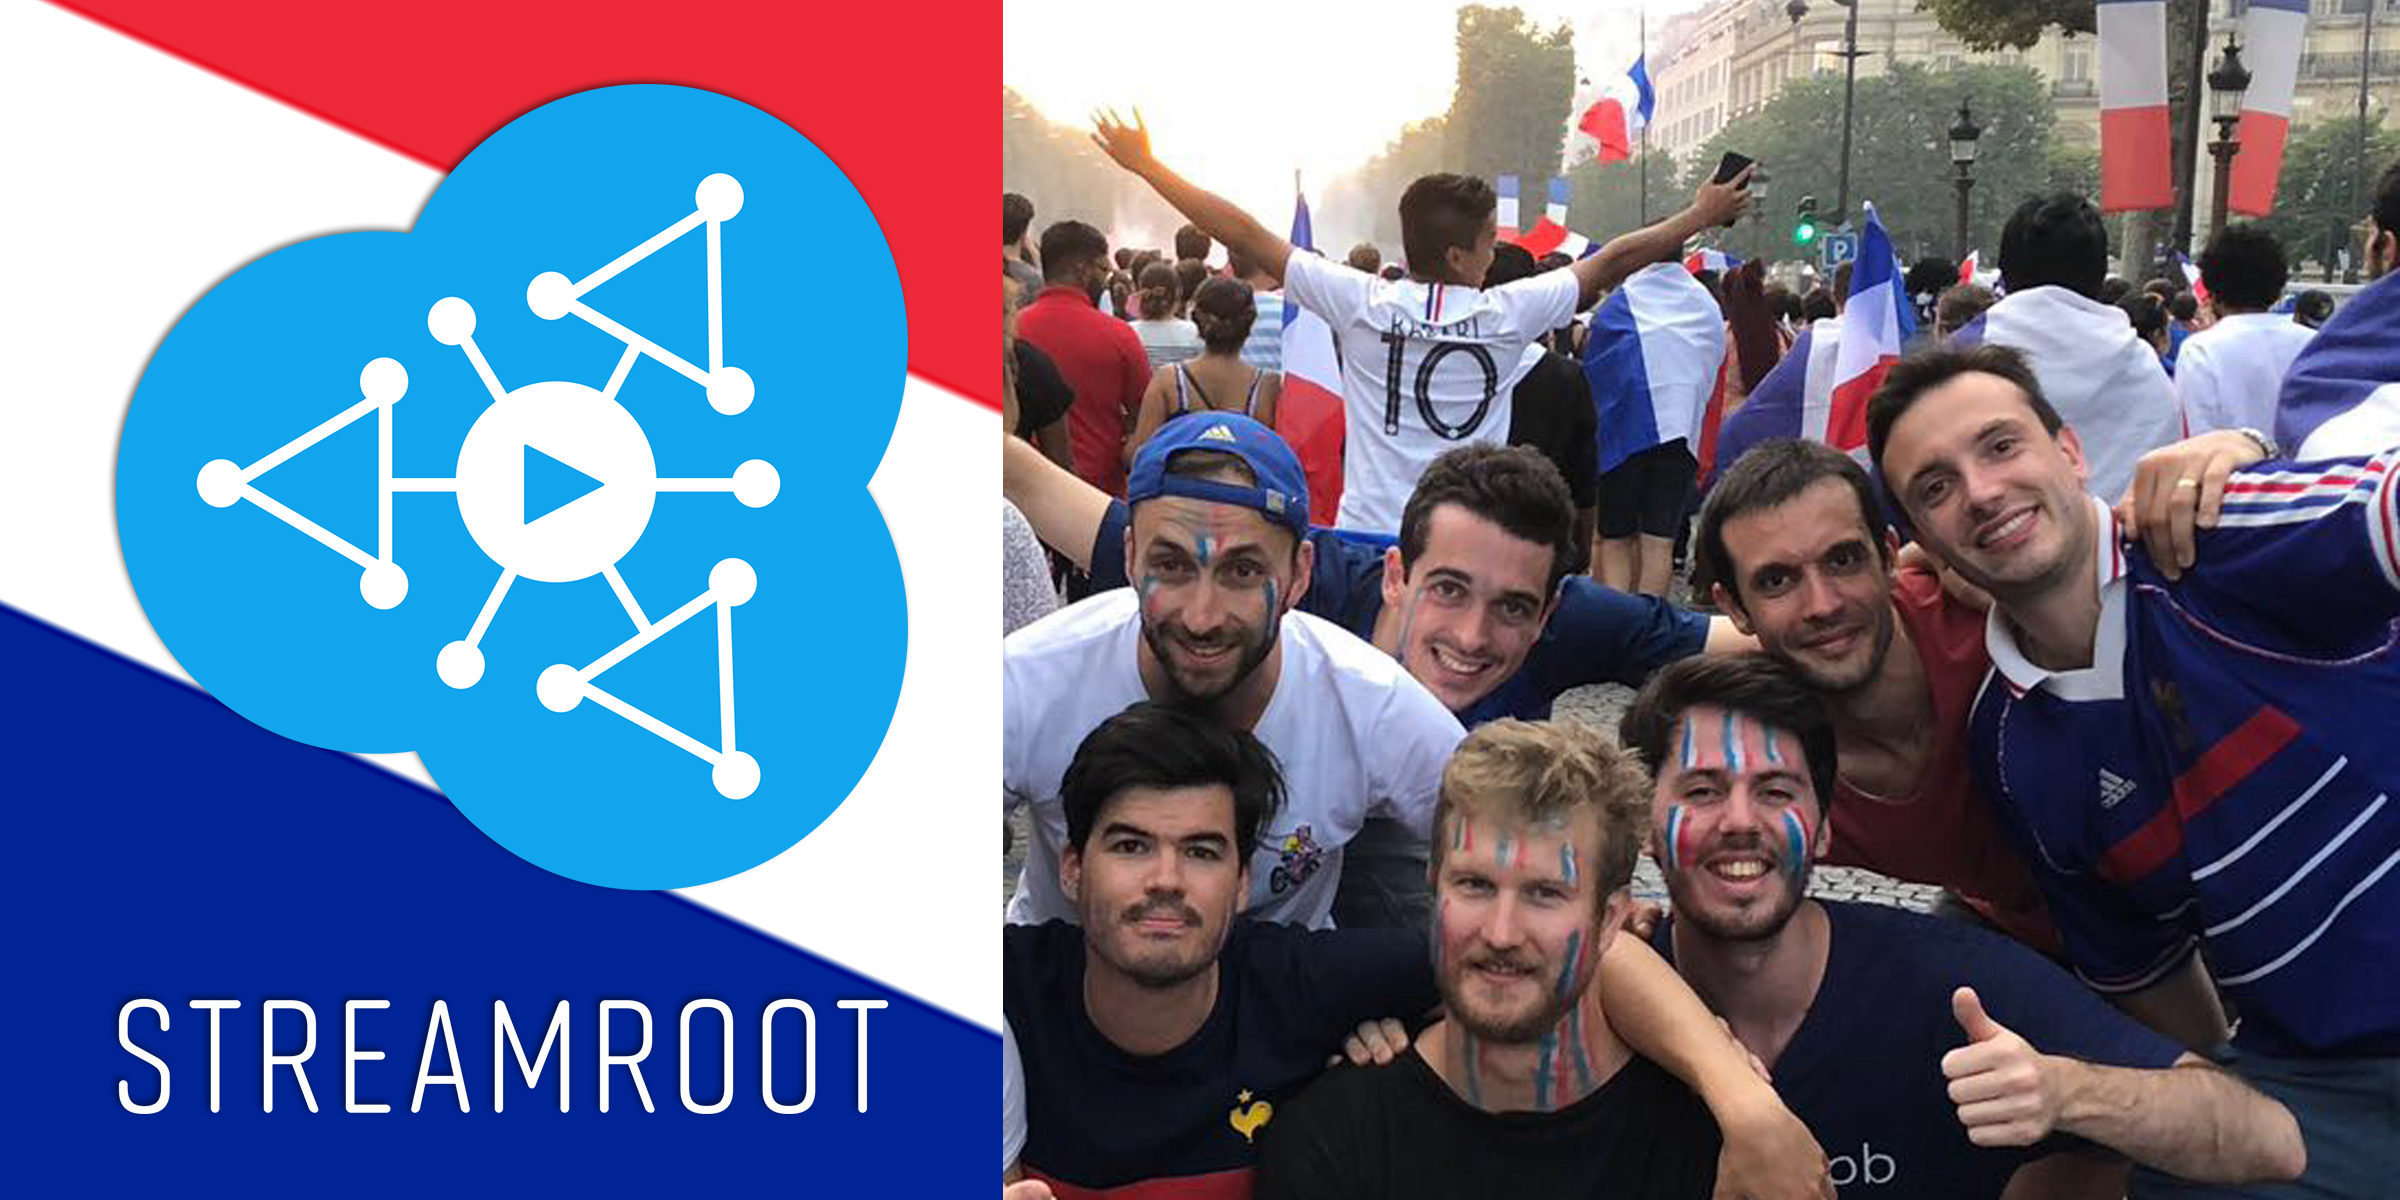 World Cup Streamroot CEO